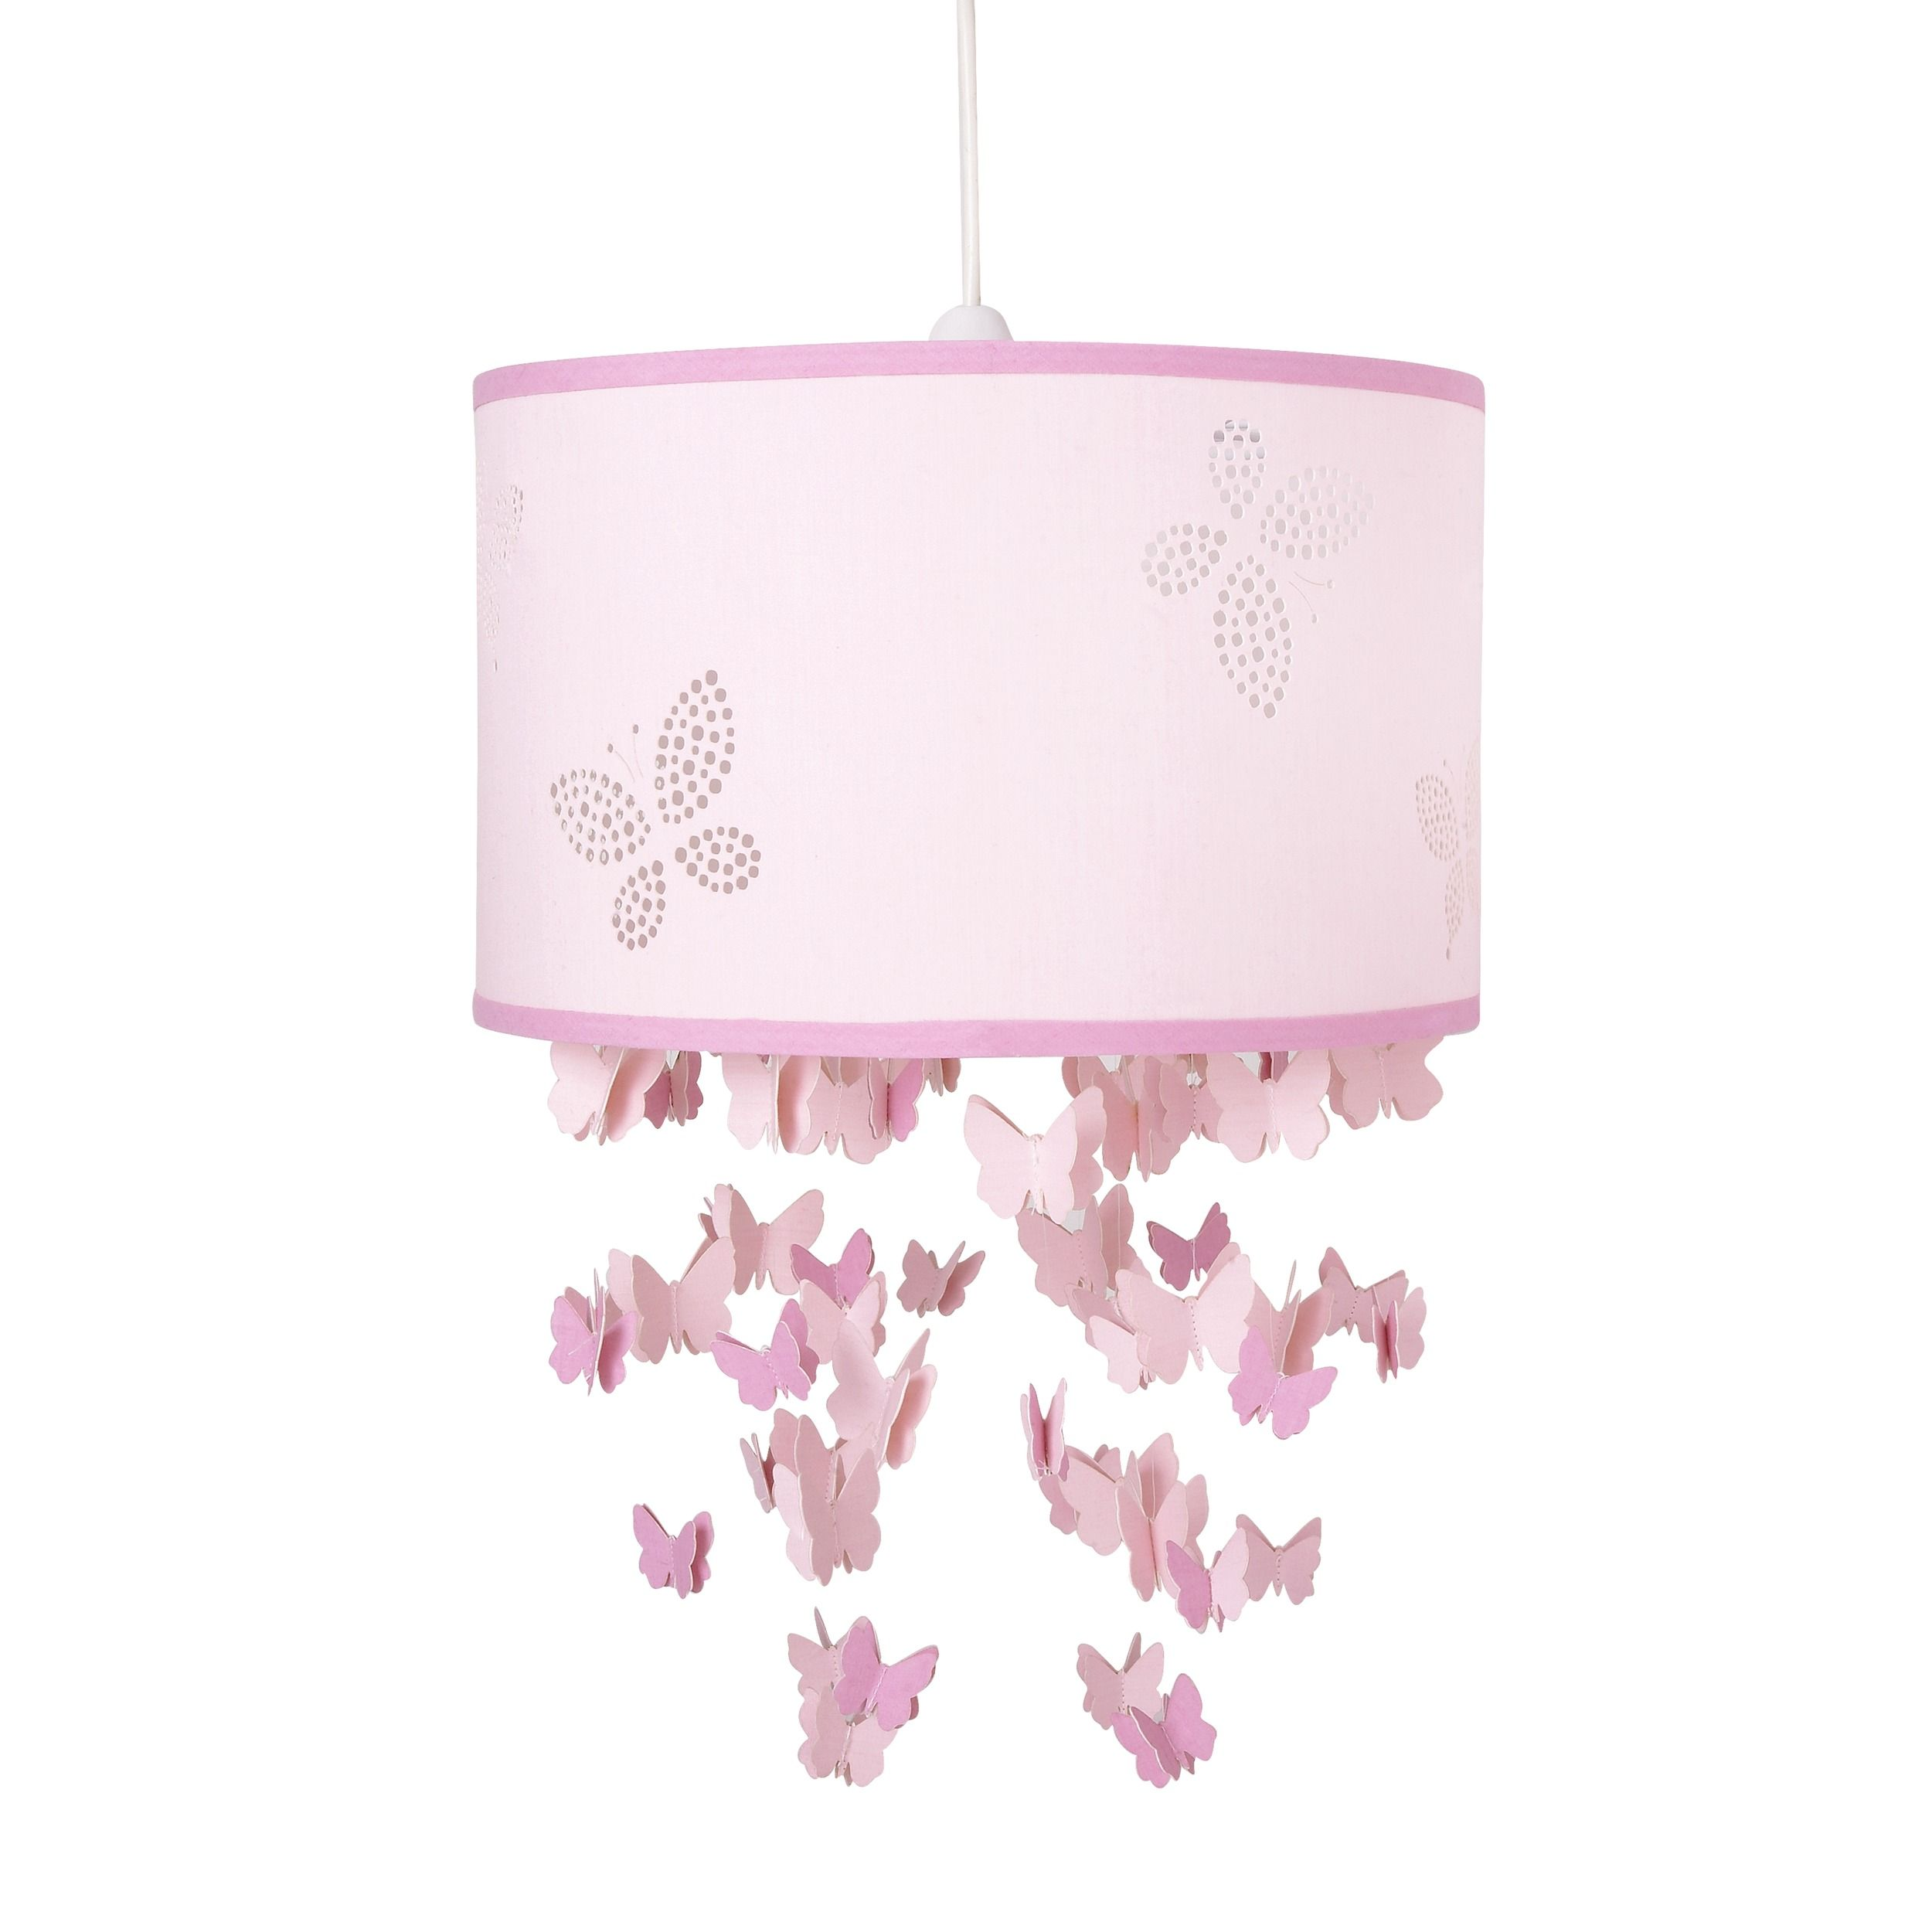 Girls Bella Butterfly Pink Mobile Ceiling Shade at LAURA